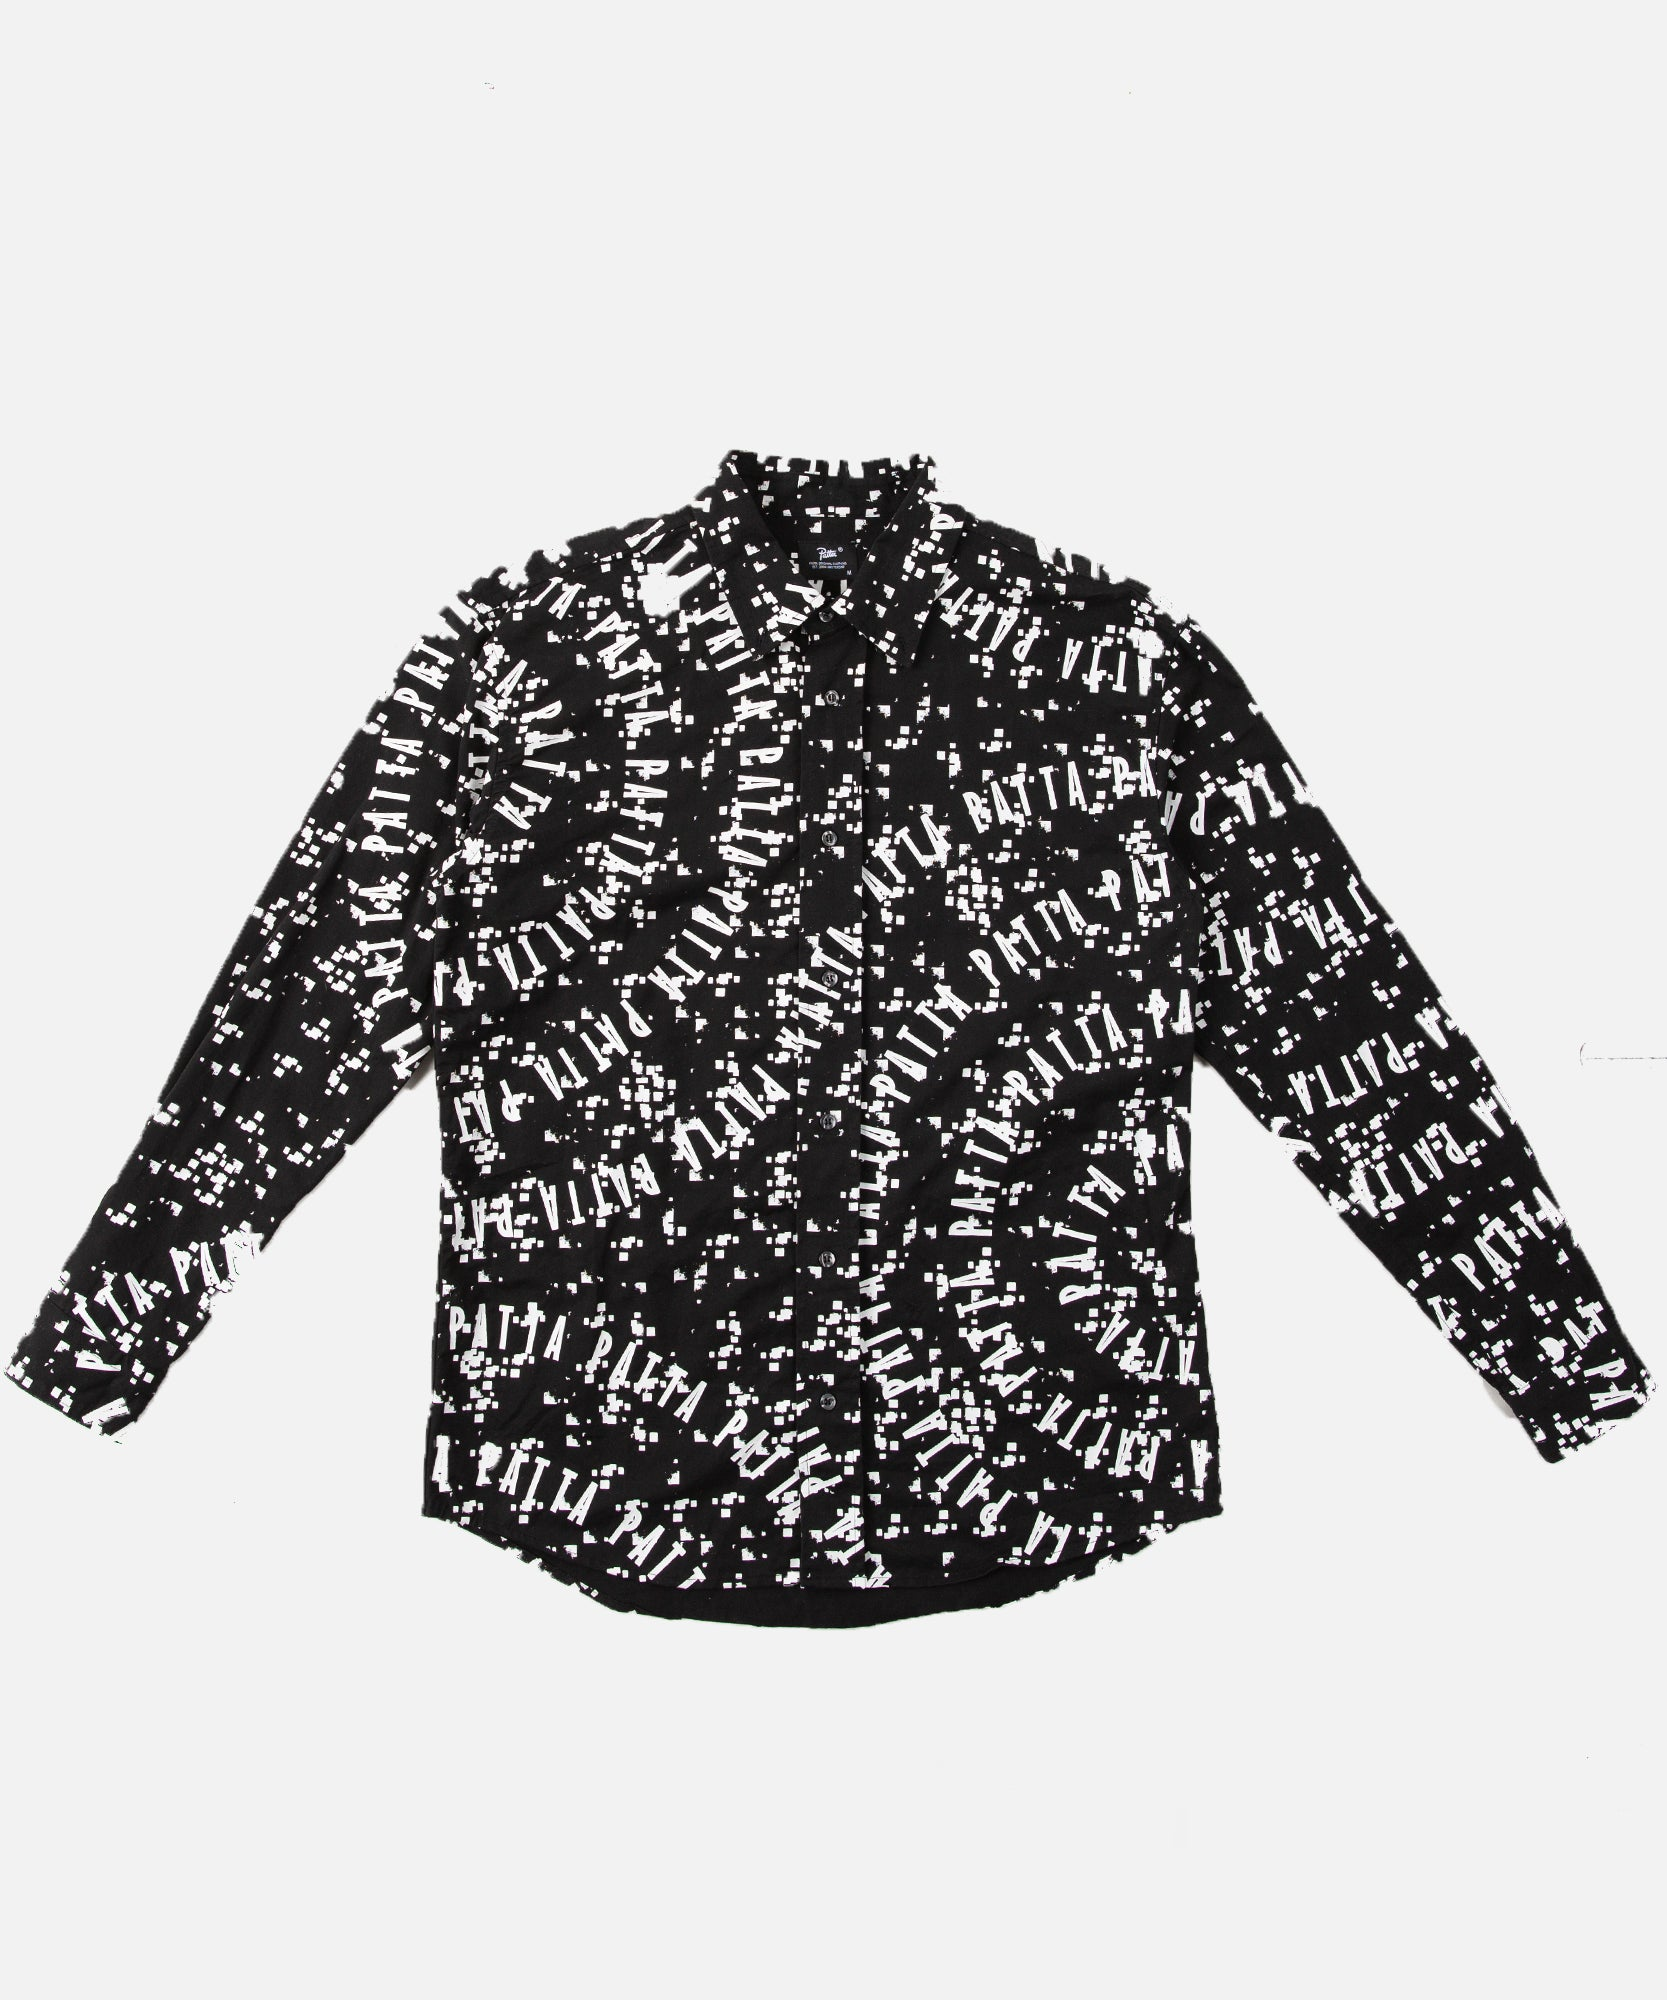 Patta Universe Relaxed Button Down Shirt (Black/White)